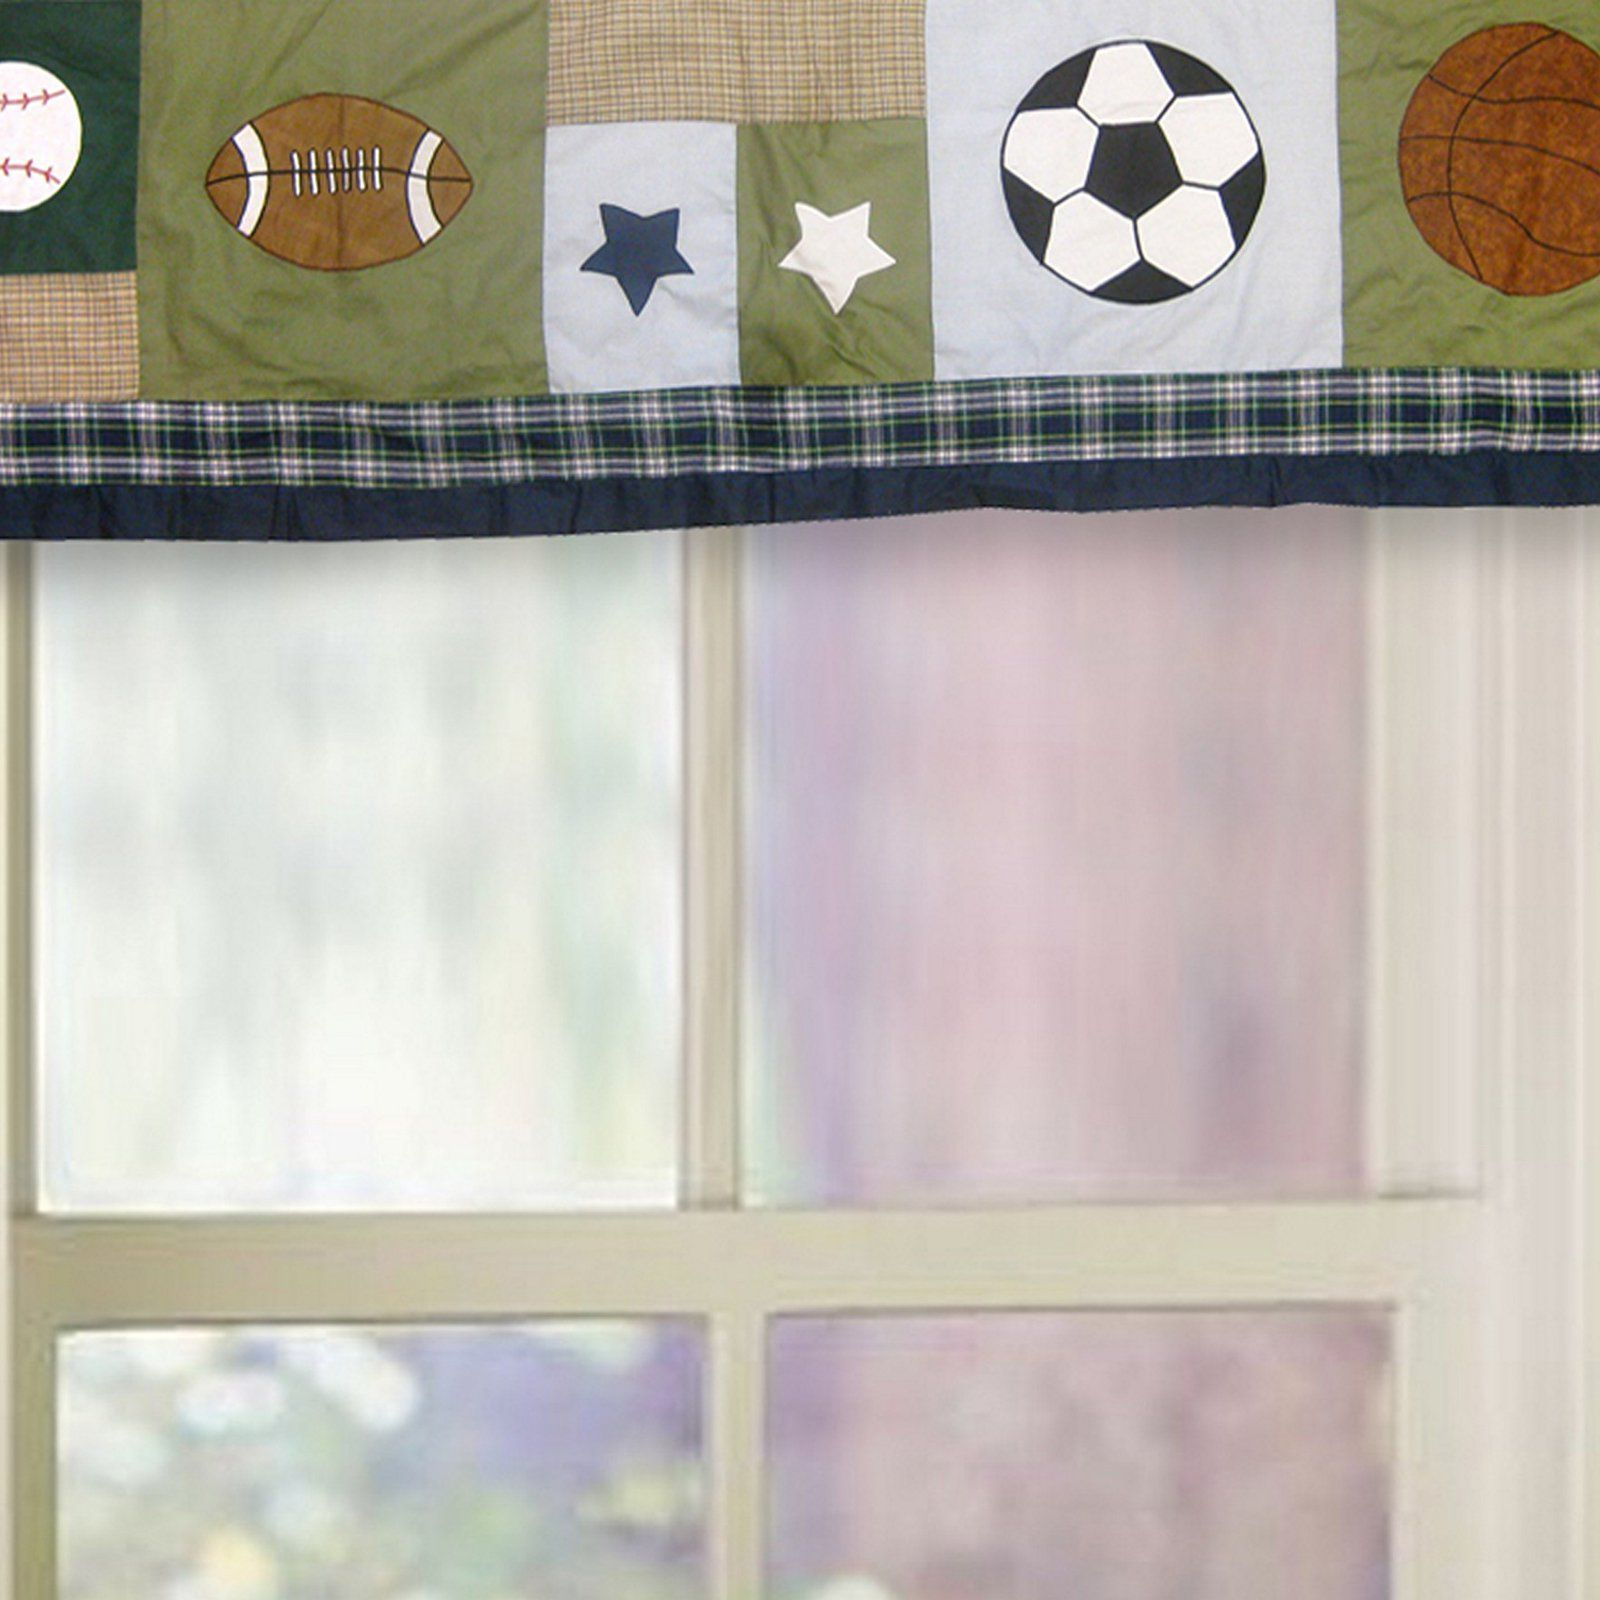 Sports Collage Window Valance | from hayneedle.com